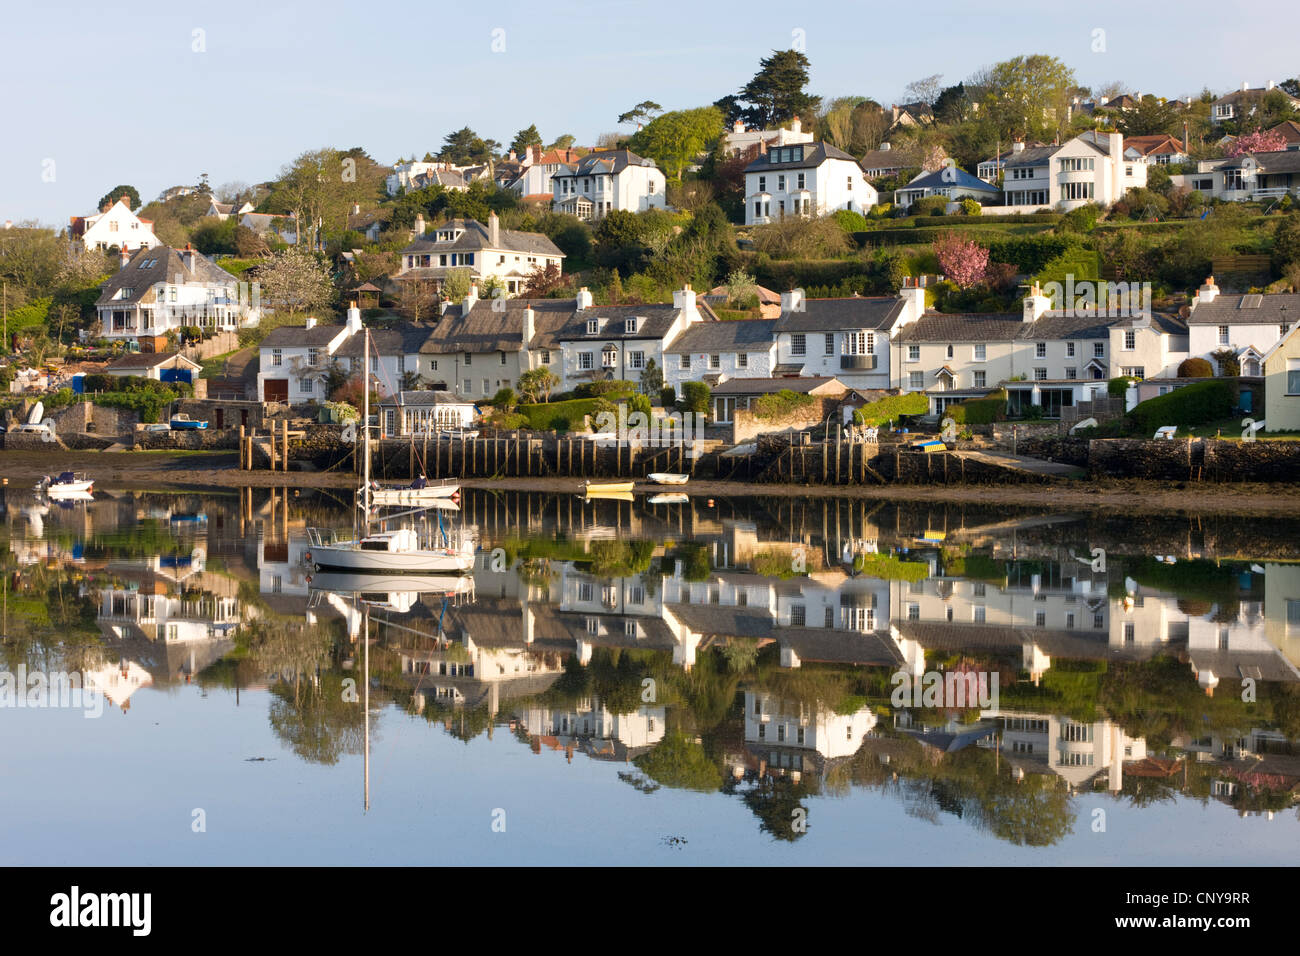 Picturesque South Hams village of Newton Ferrers, viewed from across the River Yealm at Noss Mayo, Devon - Stock Image